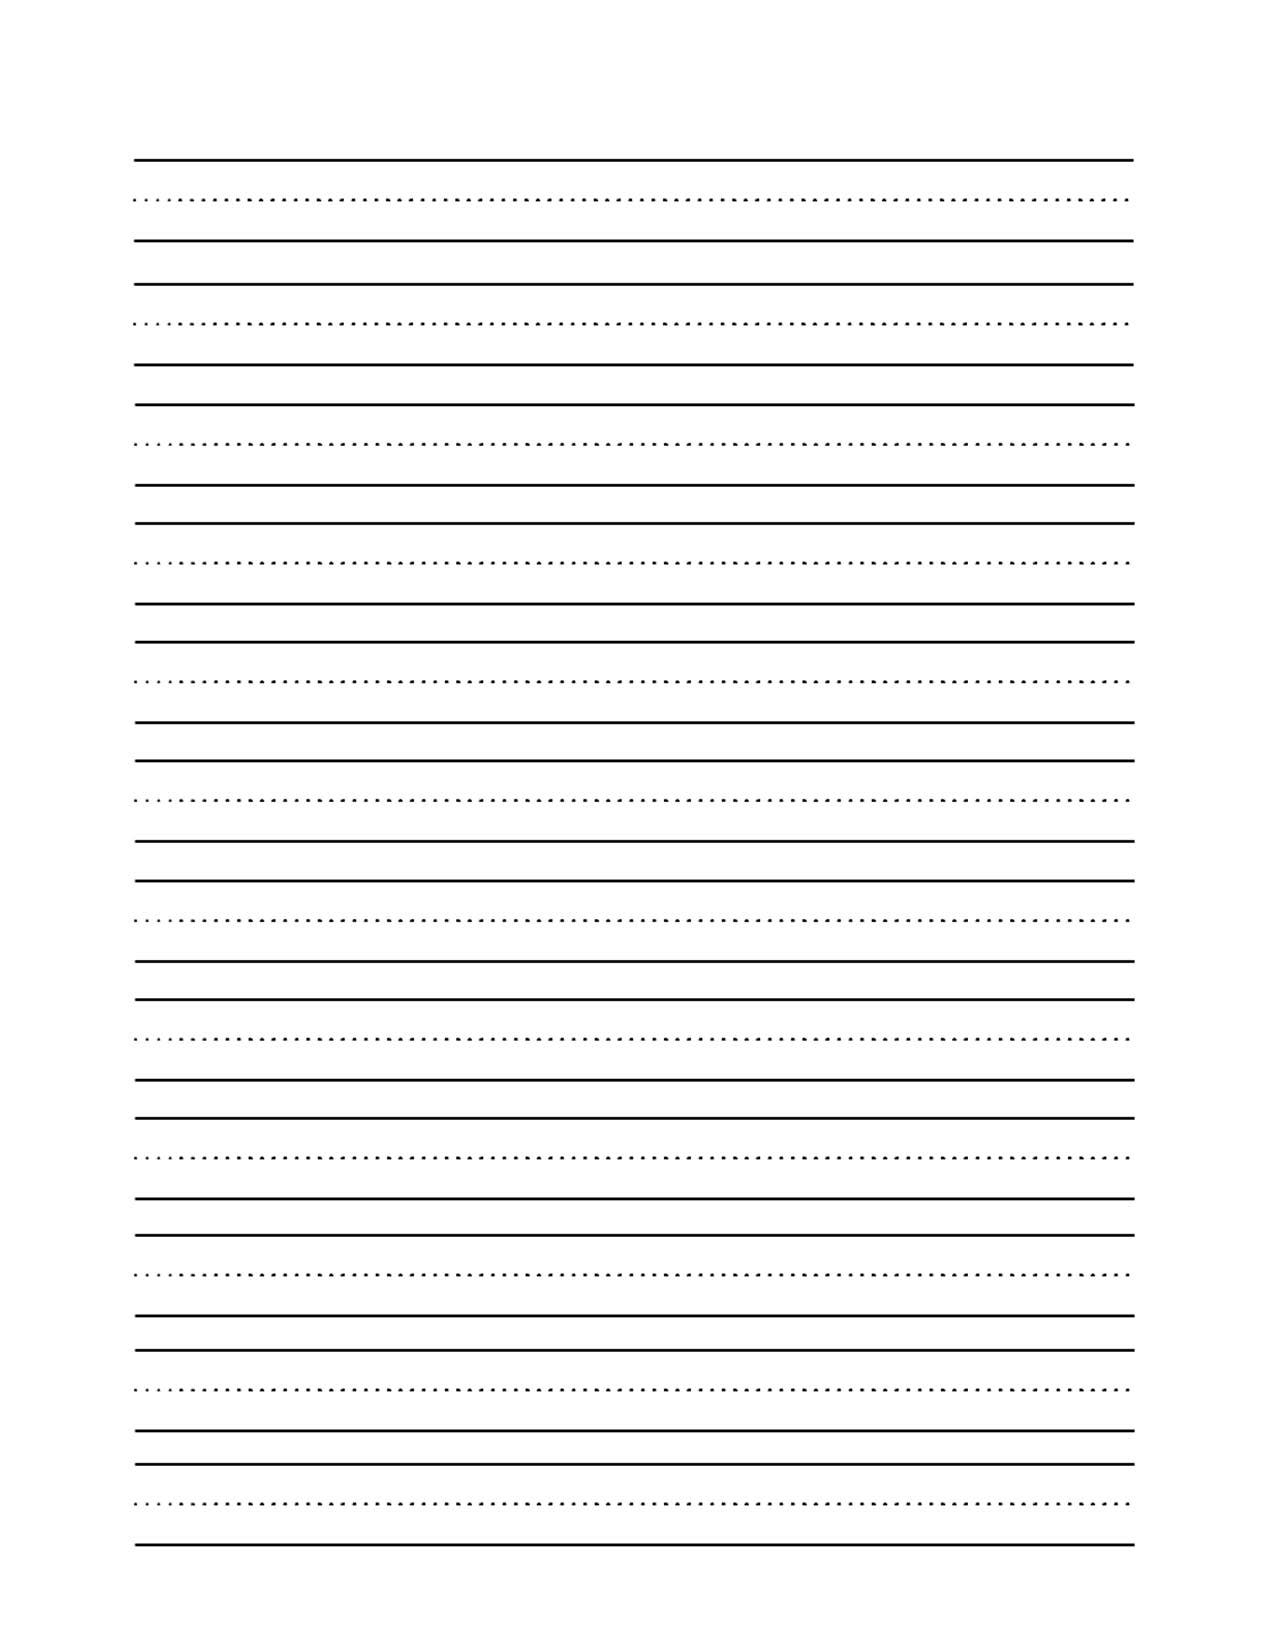 9 Best Images Of Blank Handwriting Worksheets